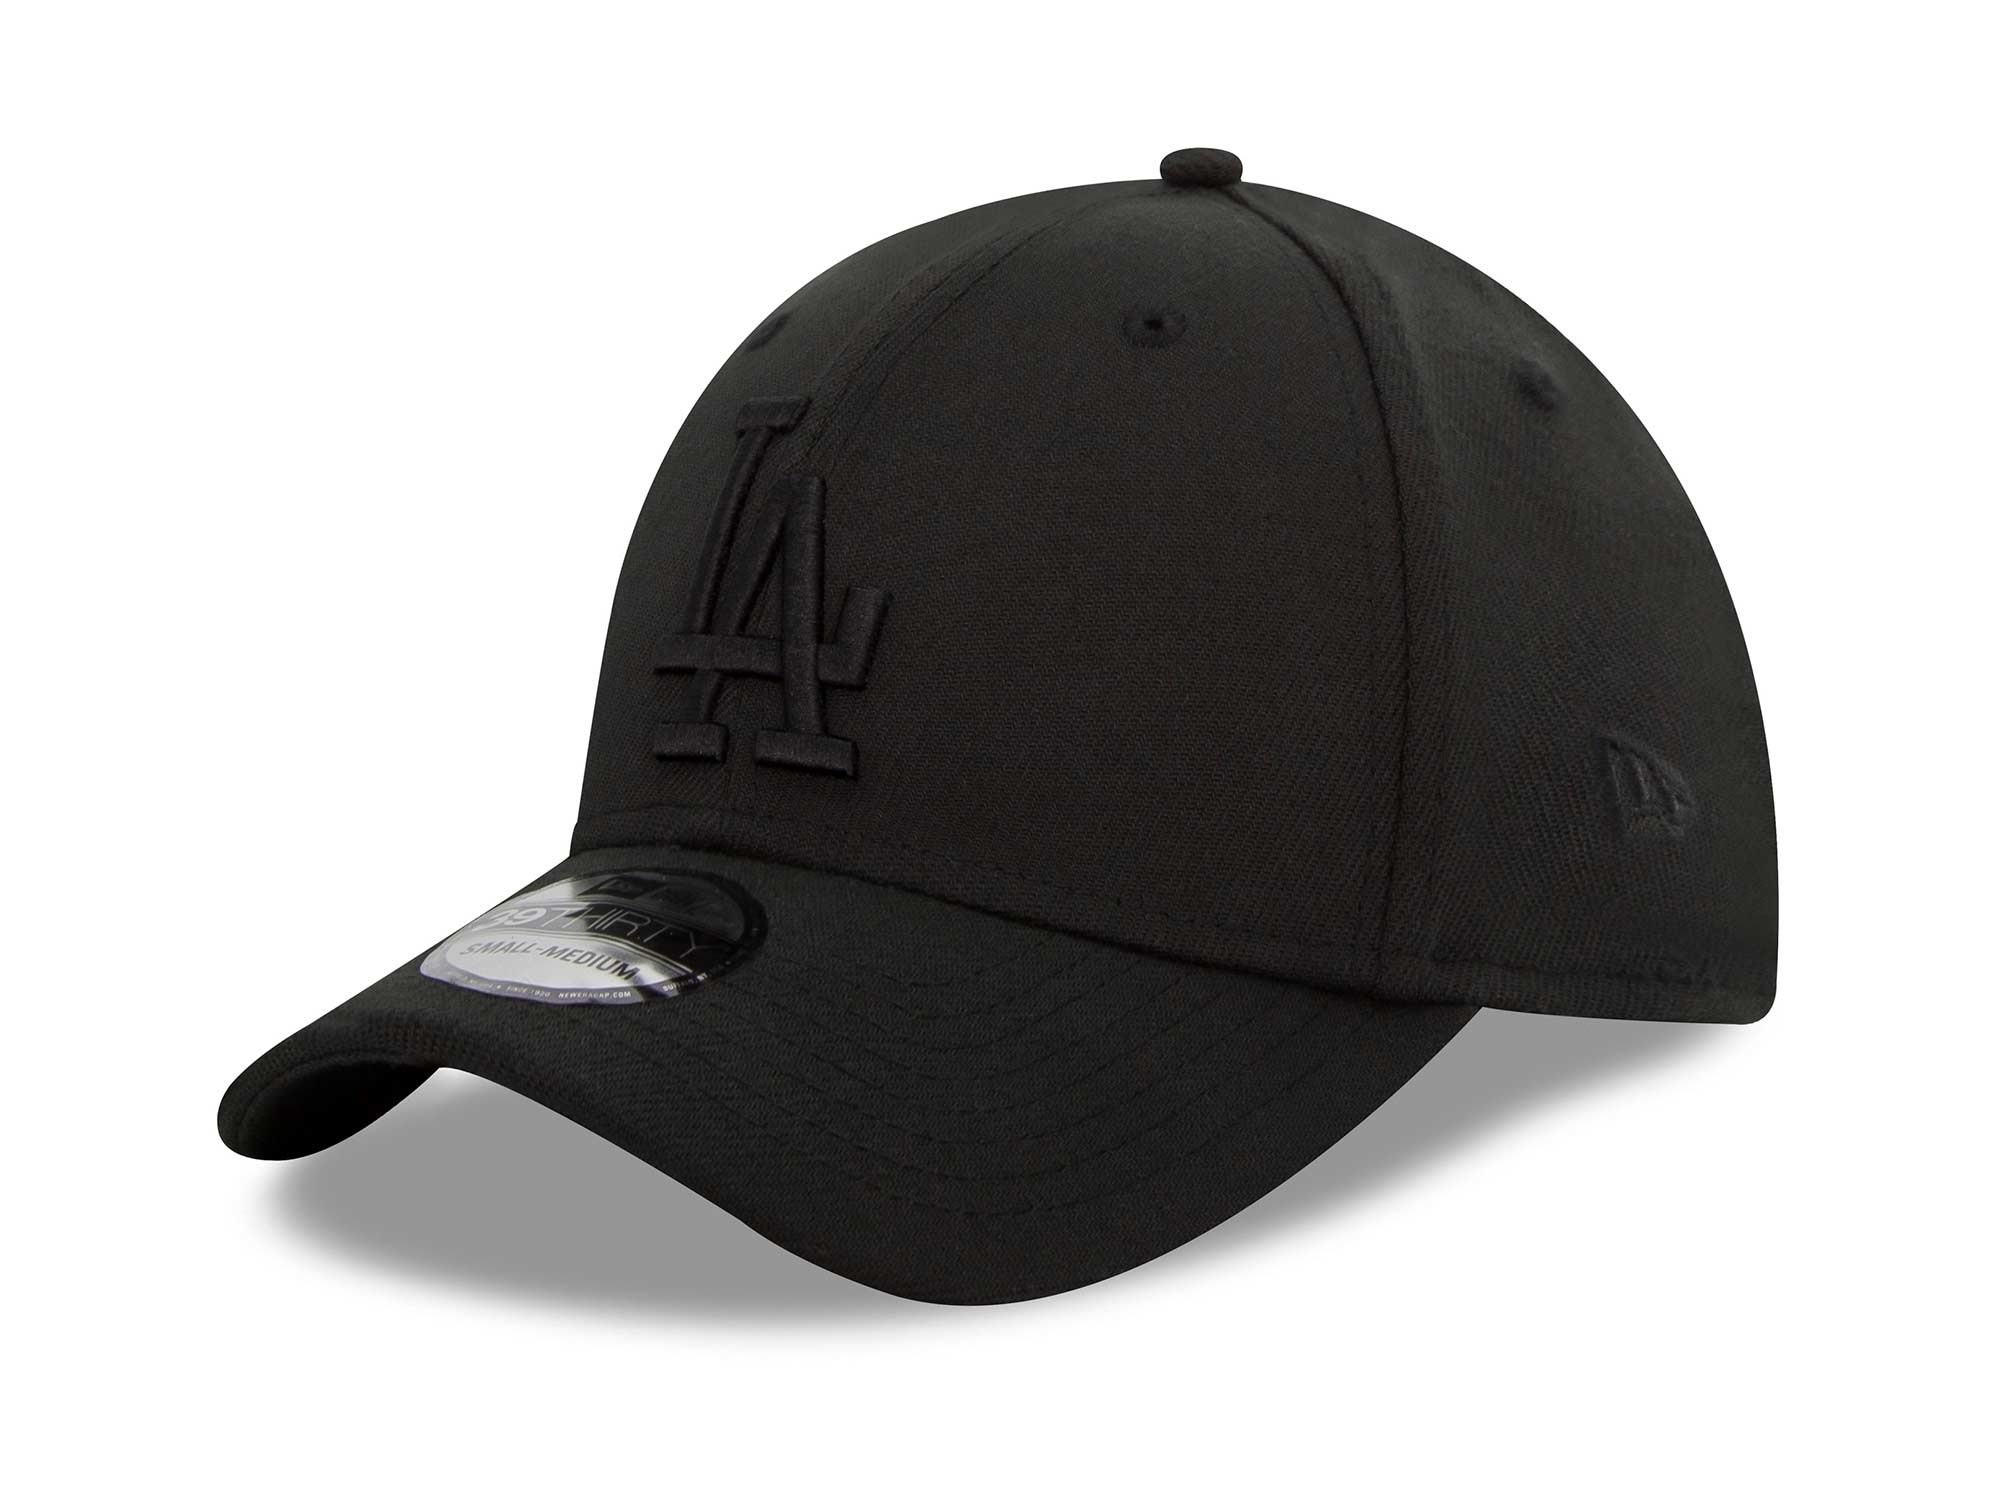 Jockey Los Angeles Dodgers 3930 Unisex Negro